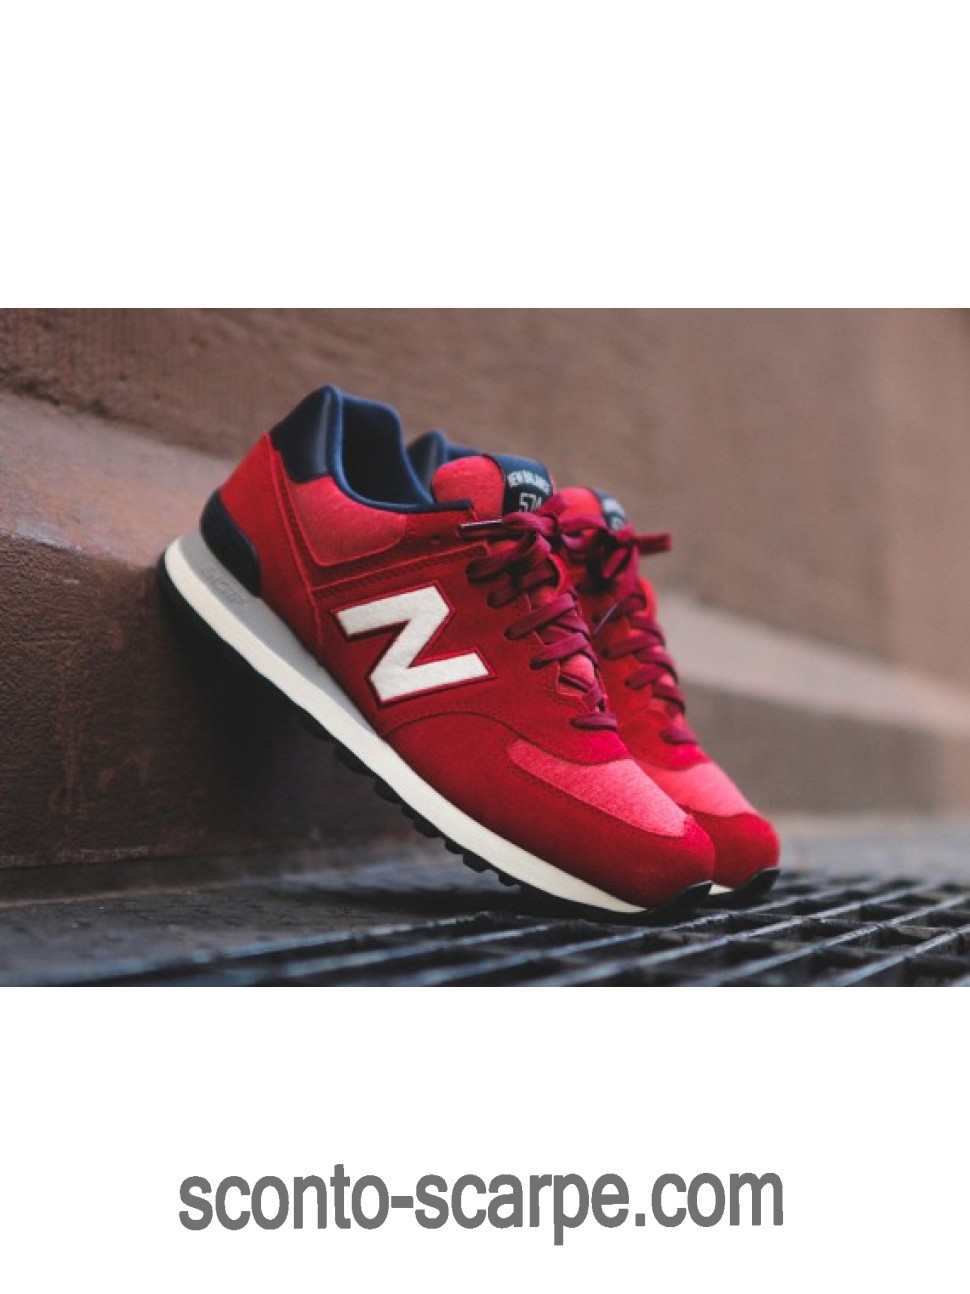 New Balance 574 Pennant Collection Boston rosse Bianche Marina Militare Blu a Prezzo Ridotto